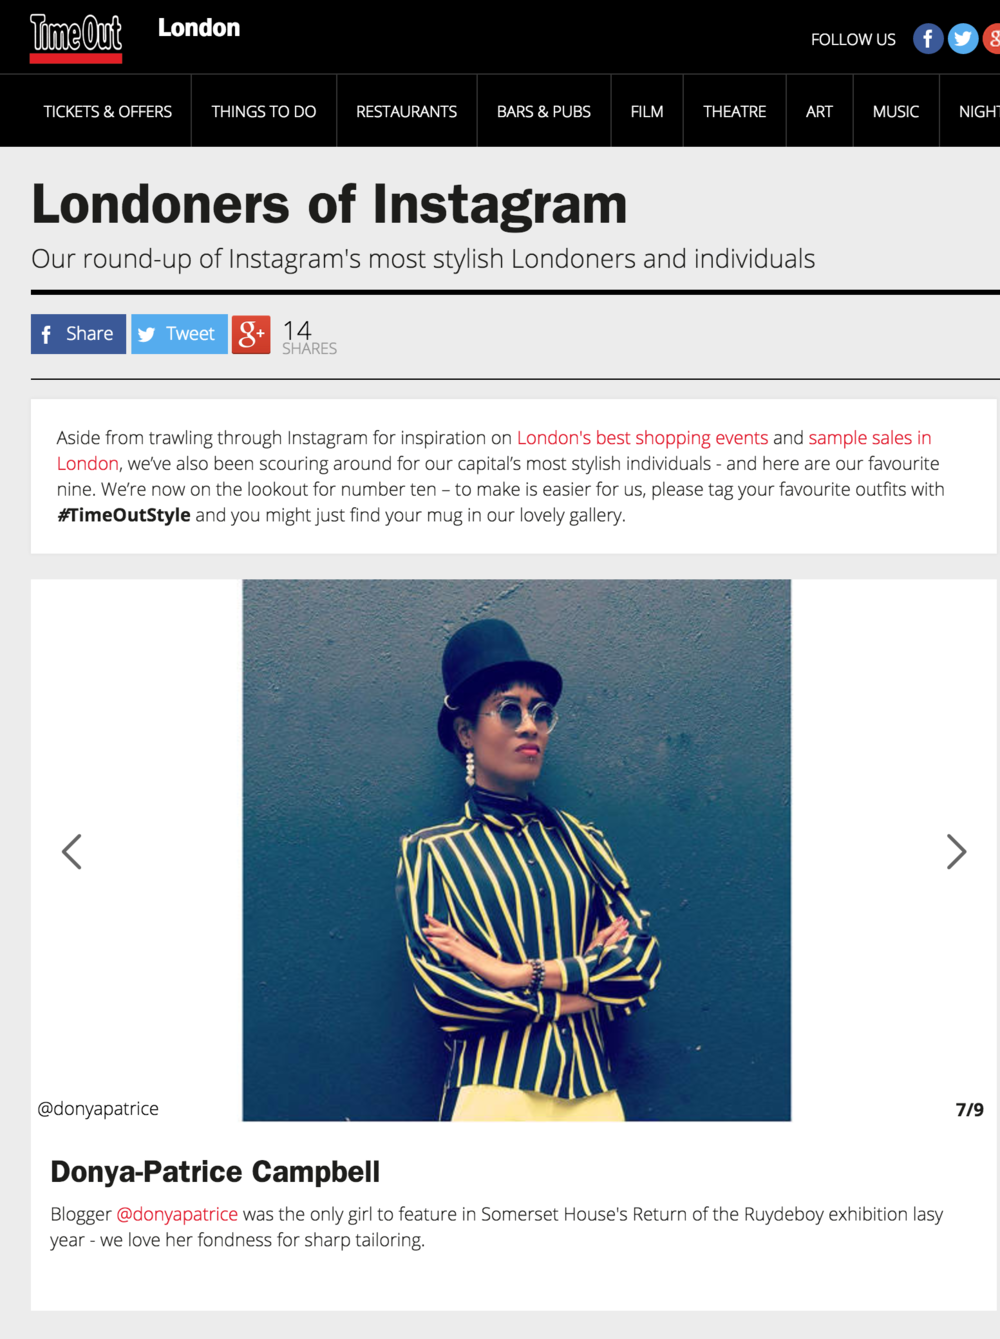 Time Out: Instagram's Most Stylish